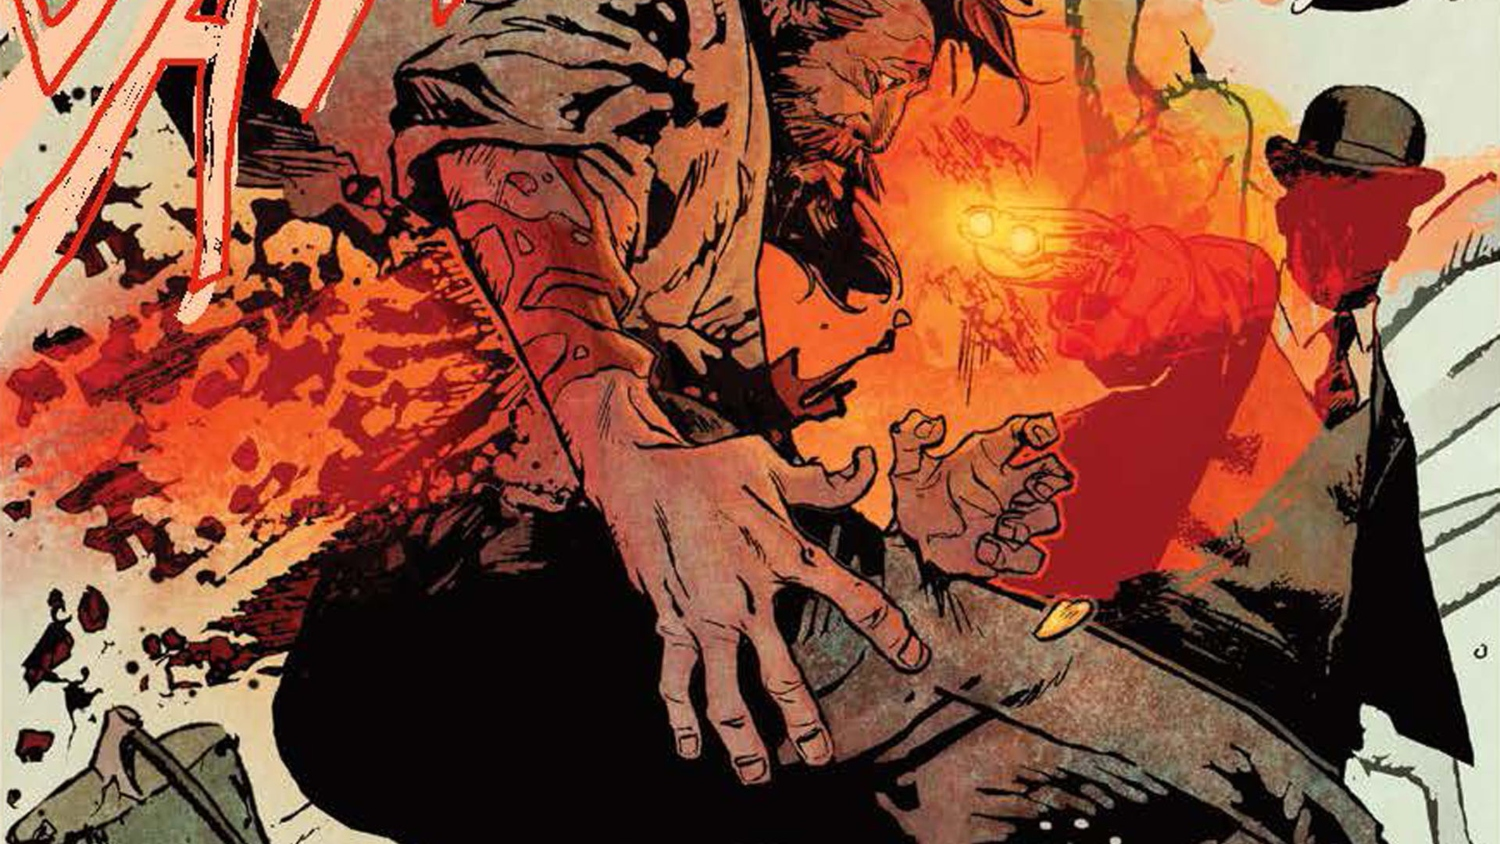 Si Spurrier talks history, horror, and 'brainmaking' in 'The R.U.S.H.'